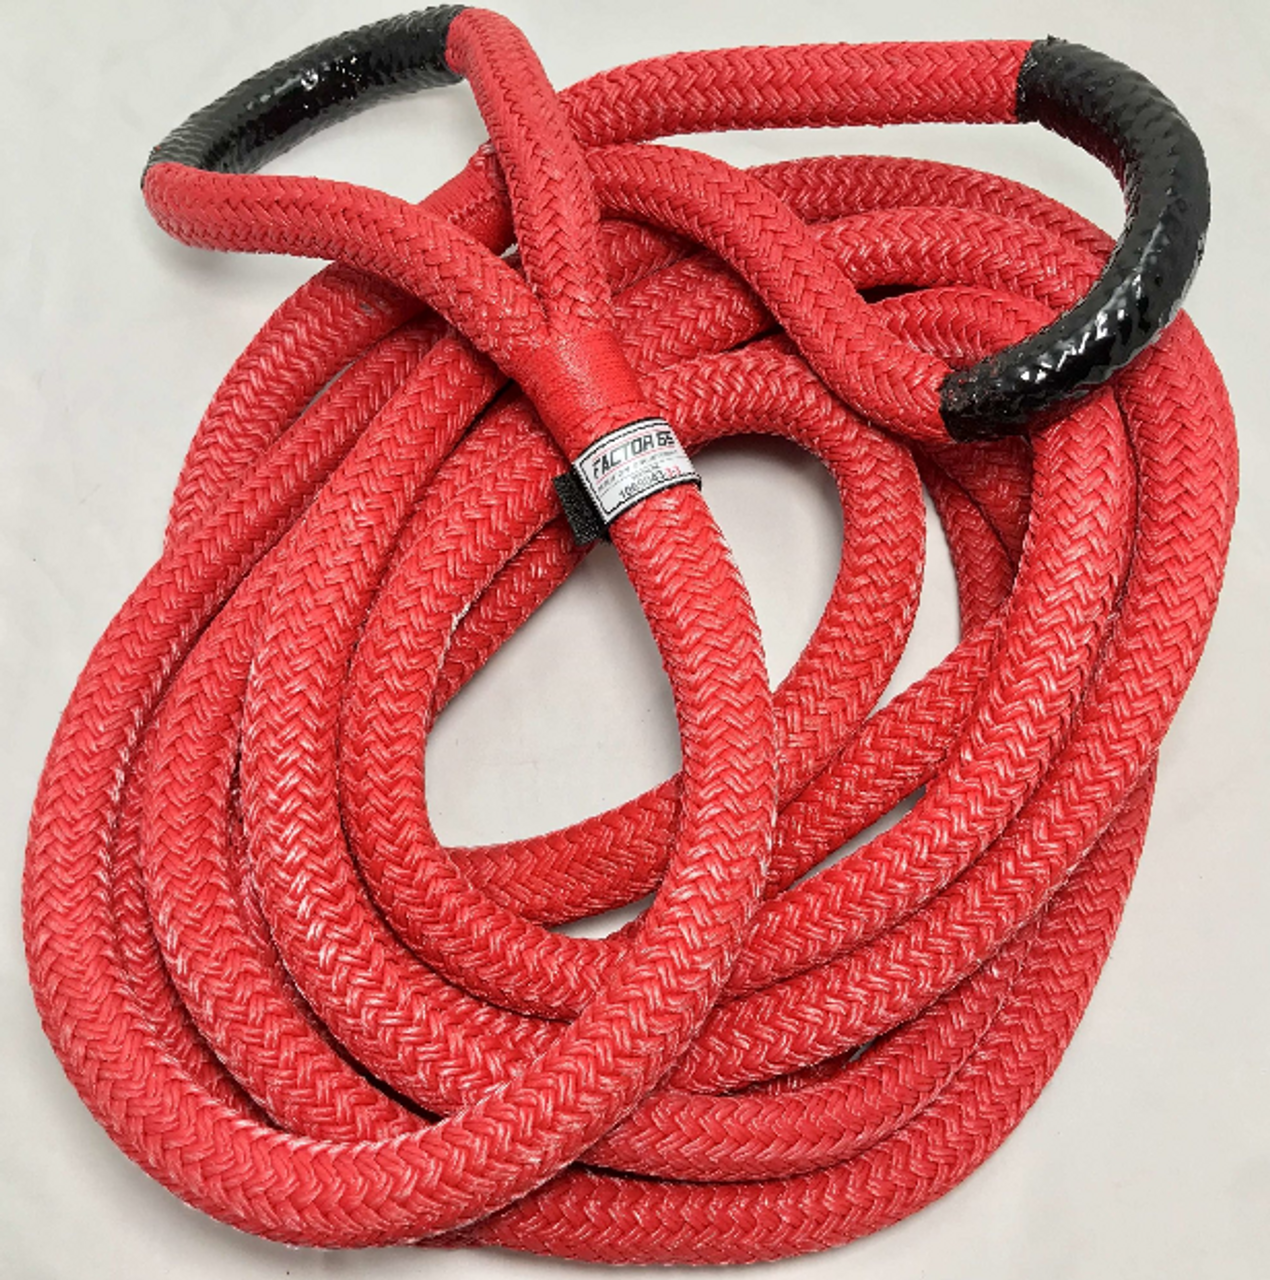 """Factor 55 00068 Extreme Duty Kinetic Energy Rope 7/8"""" x 30'"""